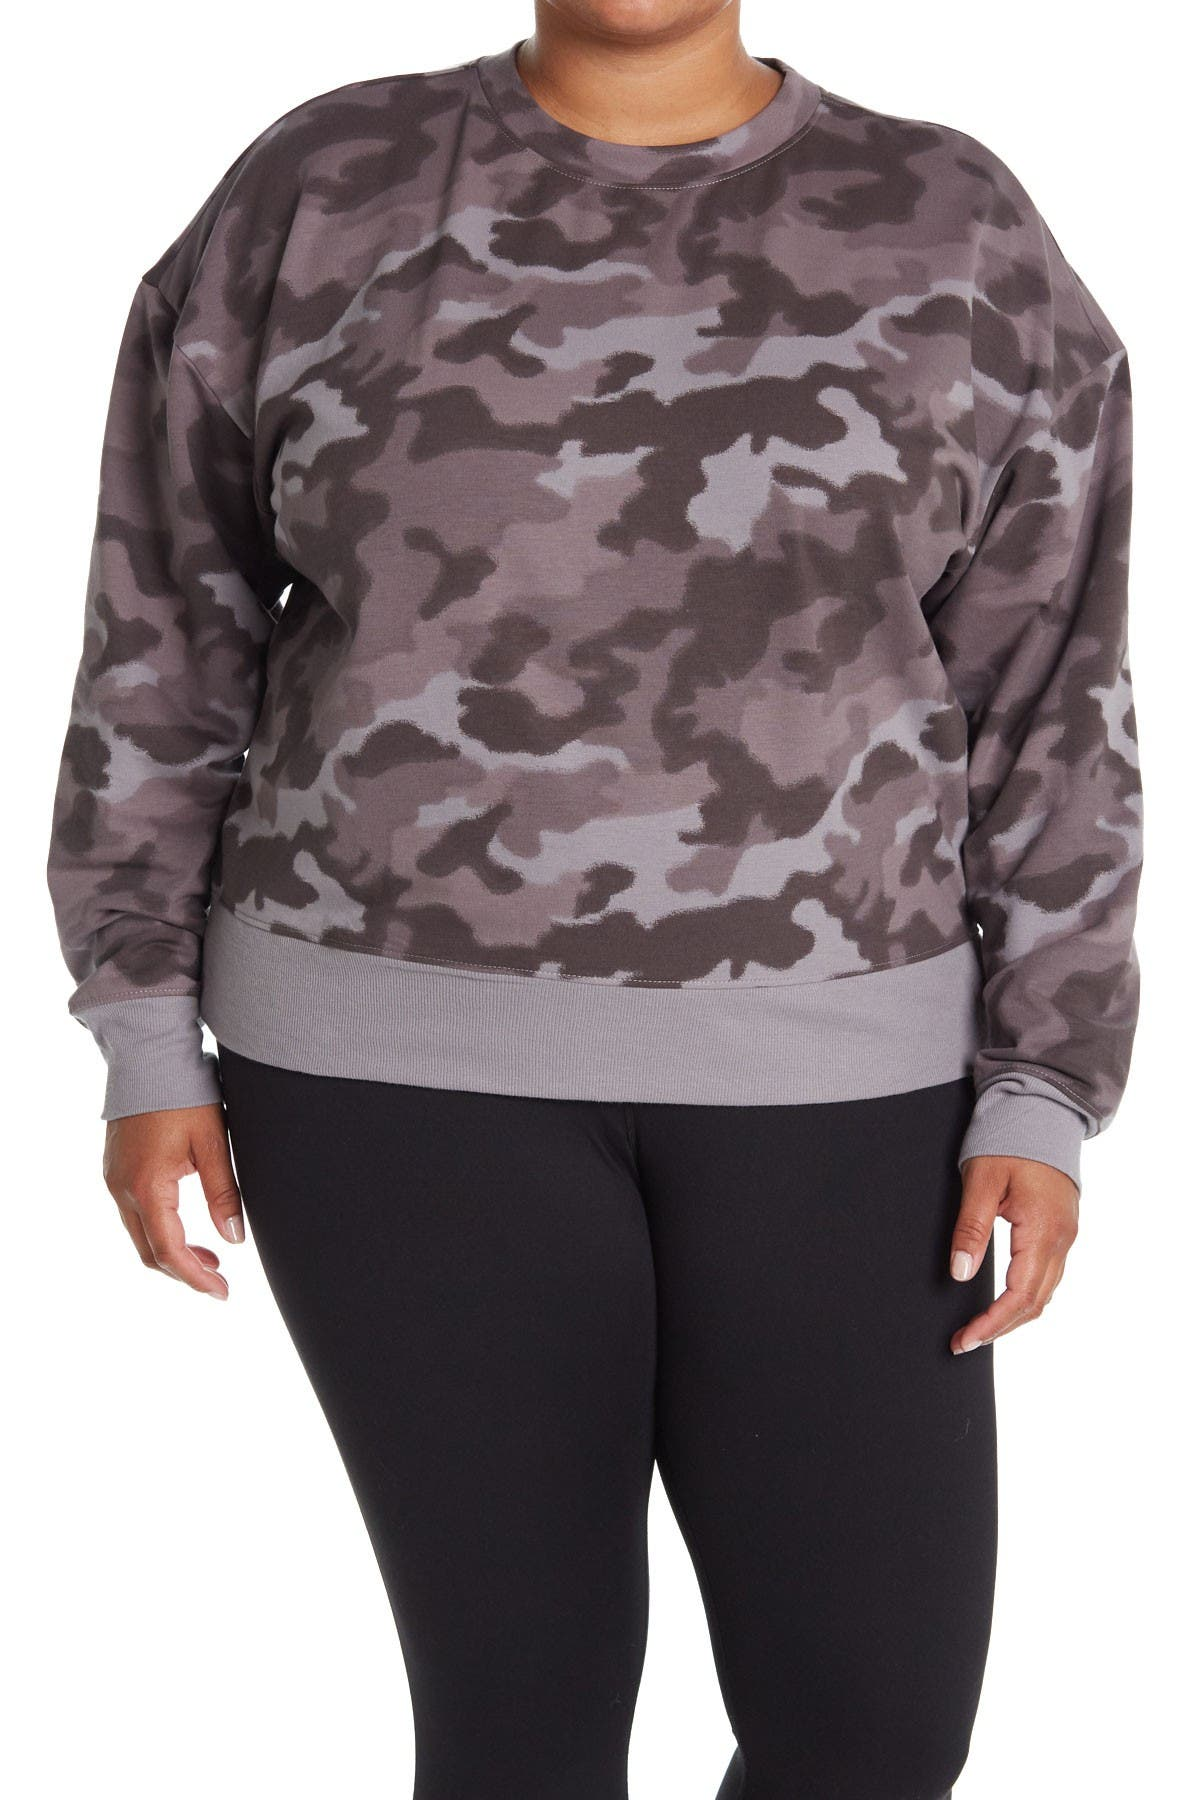 Z By Zella Powerhouse Printed Pullover